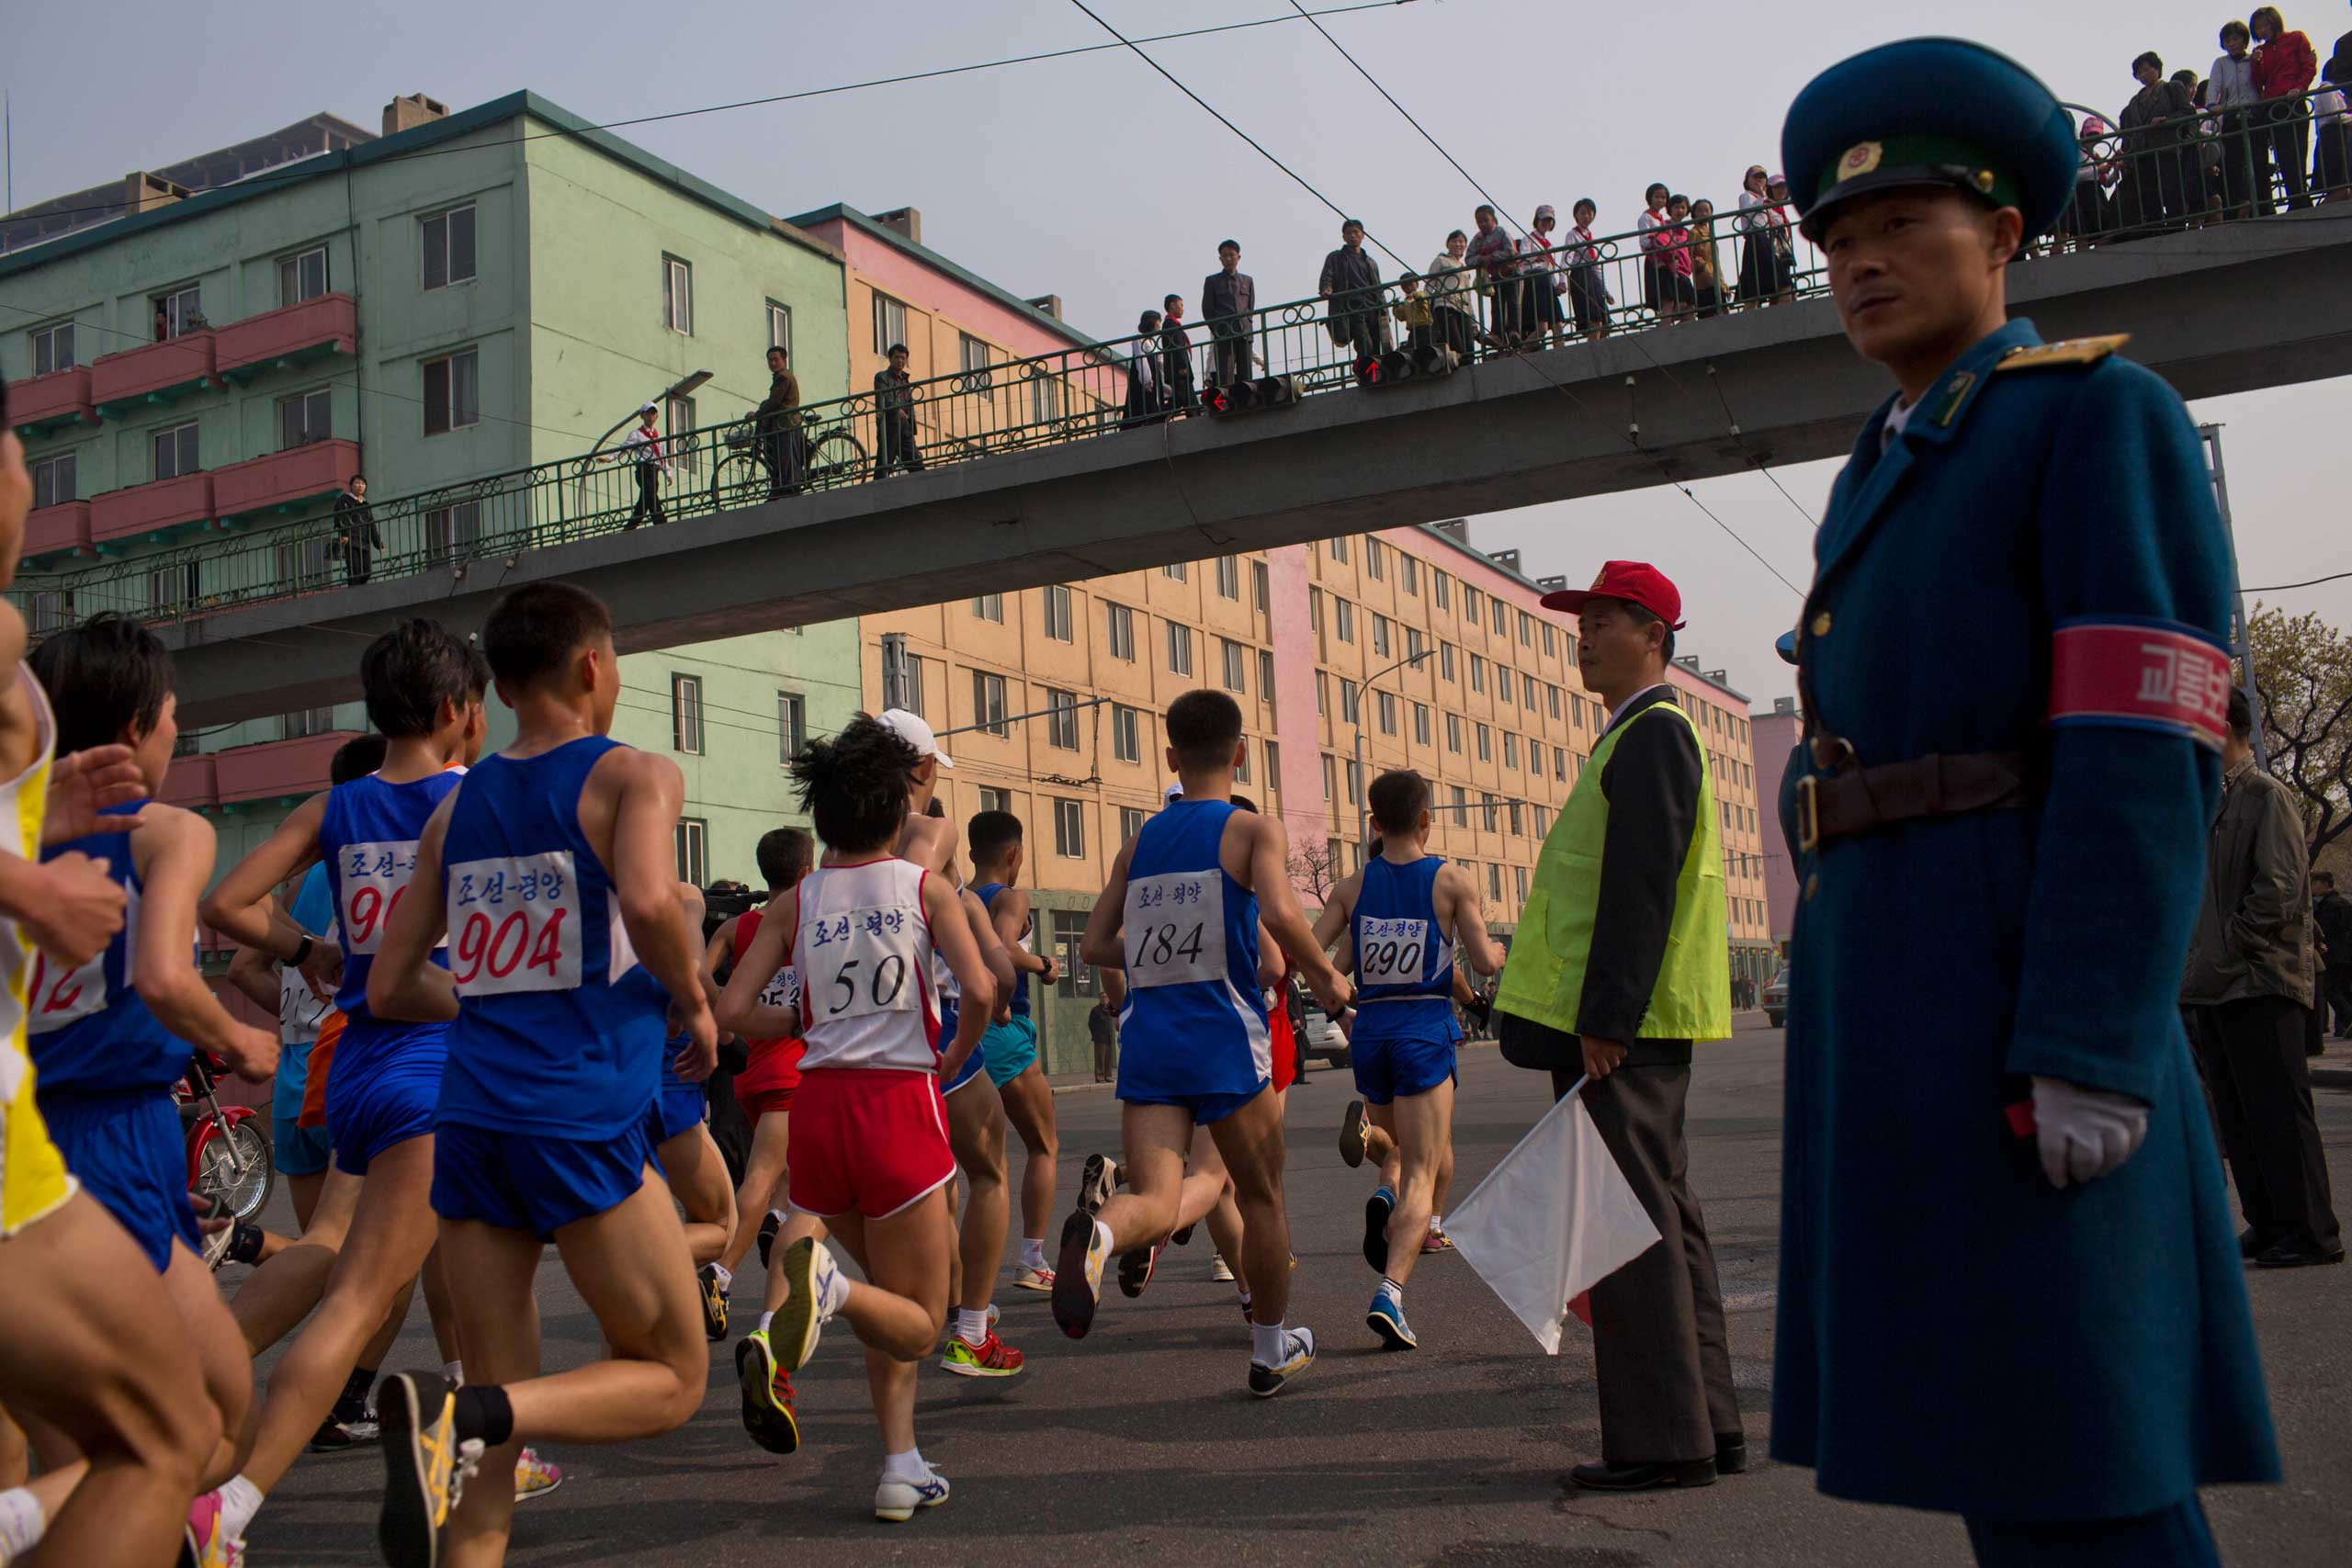 Runners pass under a pedestrian bridge during the running of the Mangyongdae Prize International Marathon in Pyongyang, North Korea on April 13, 2014.